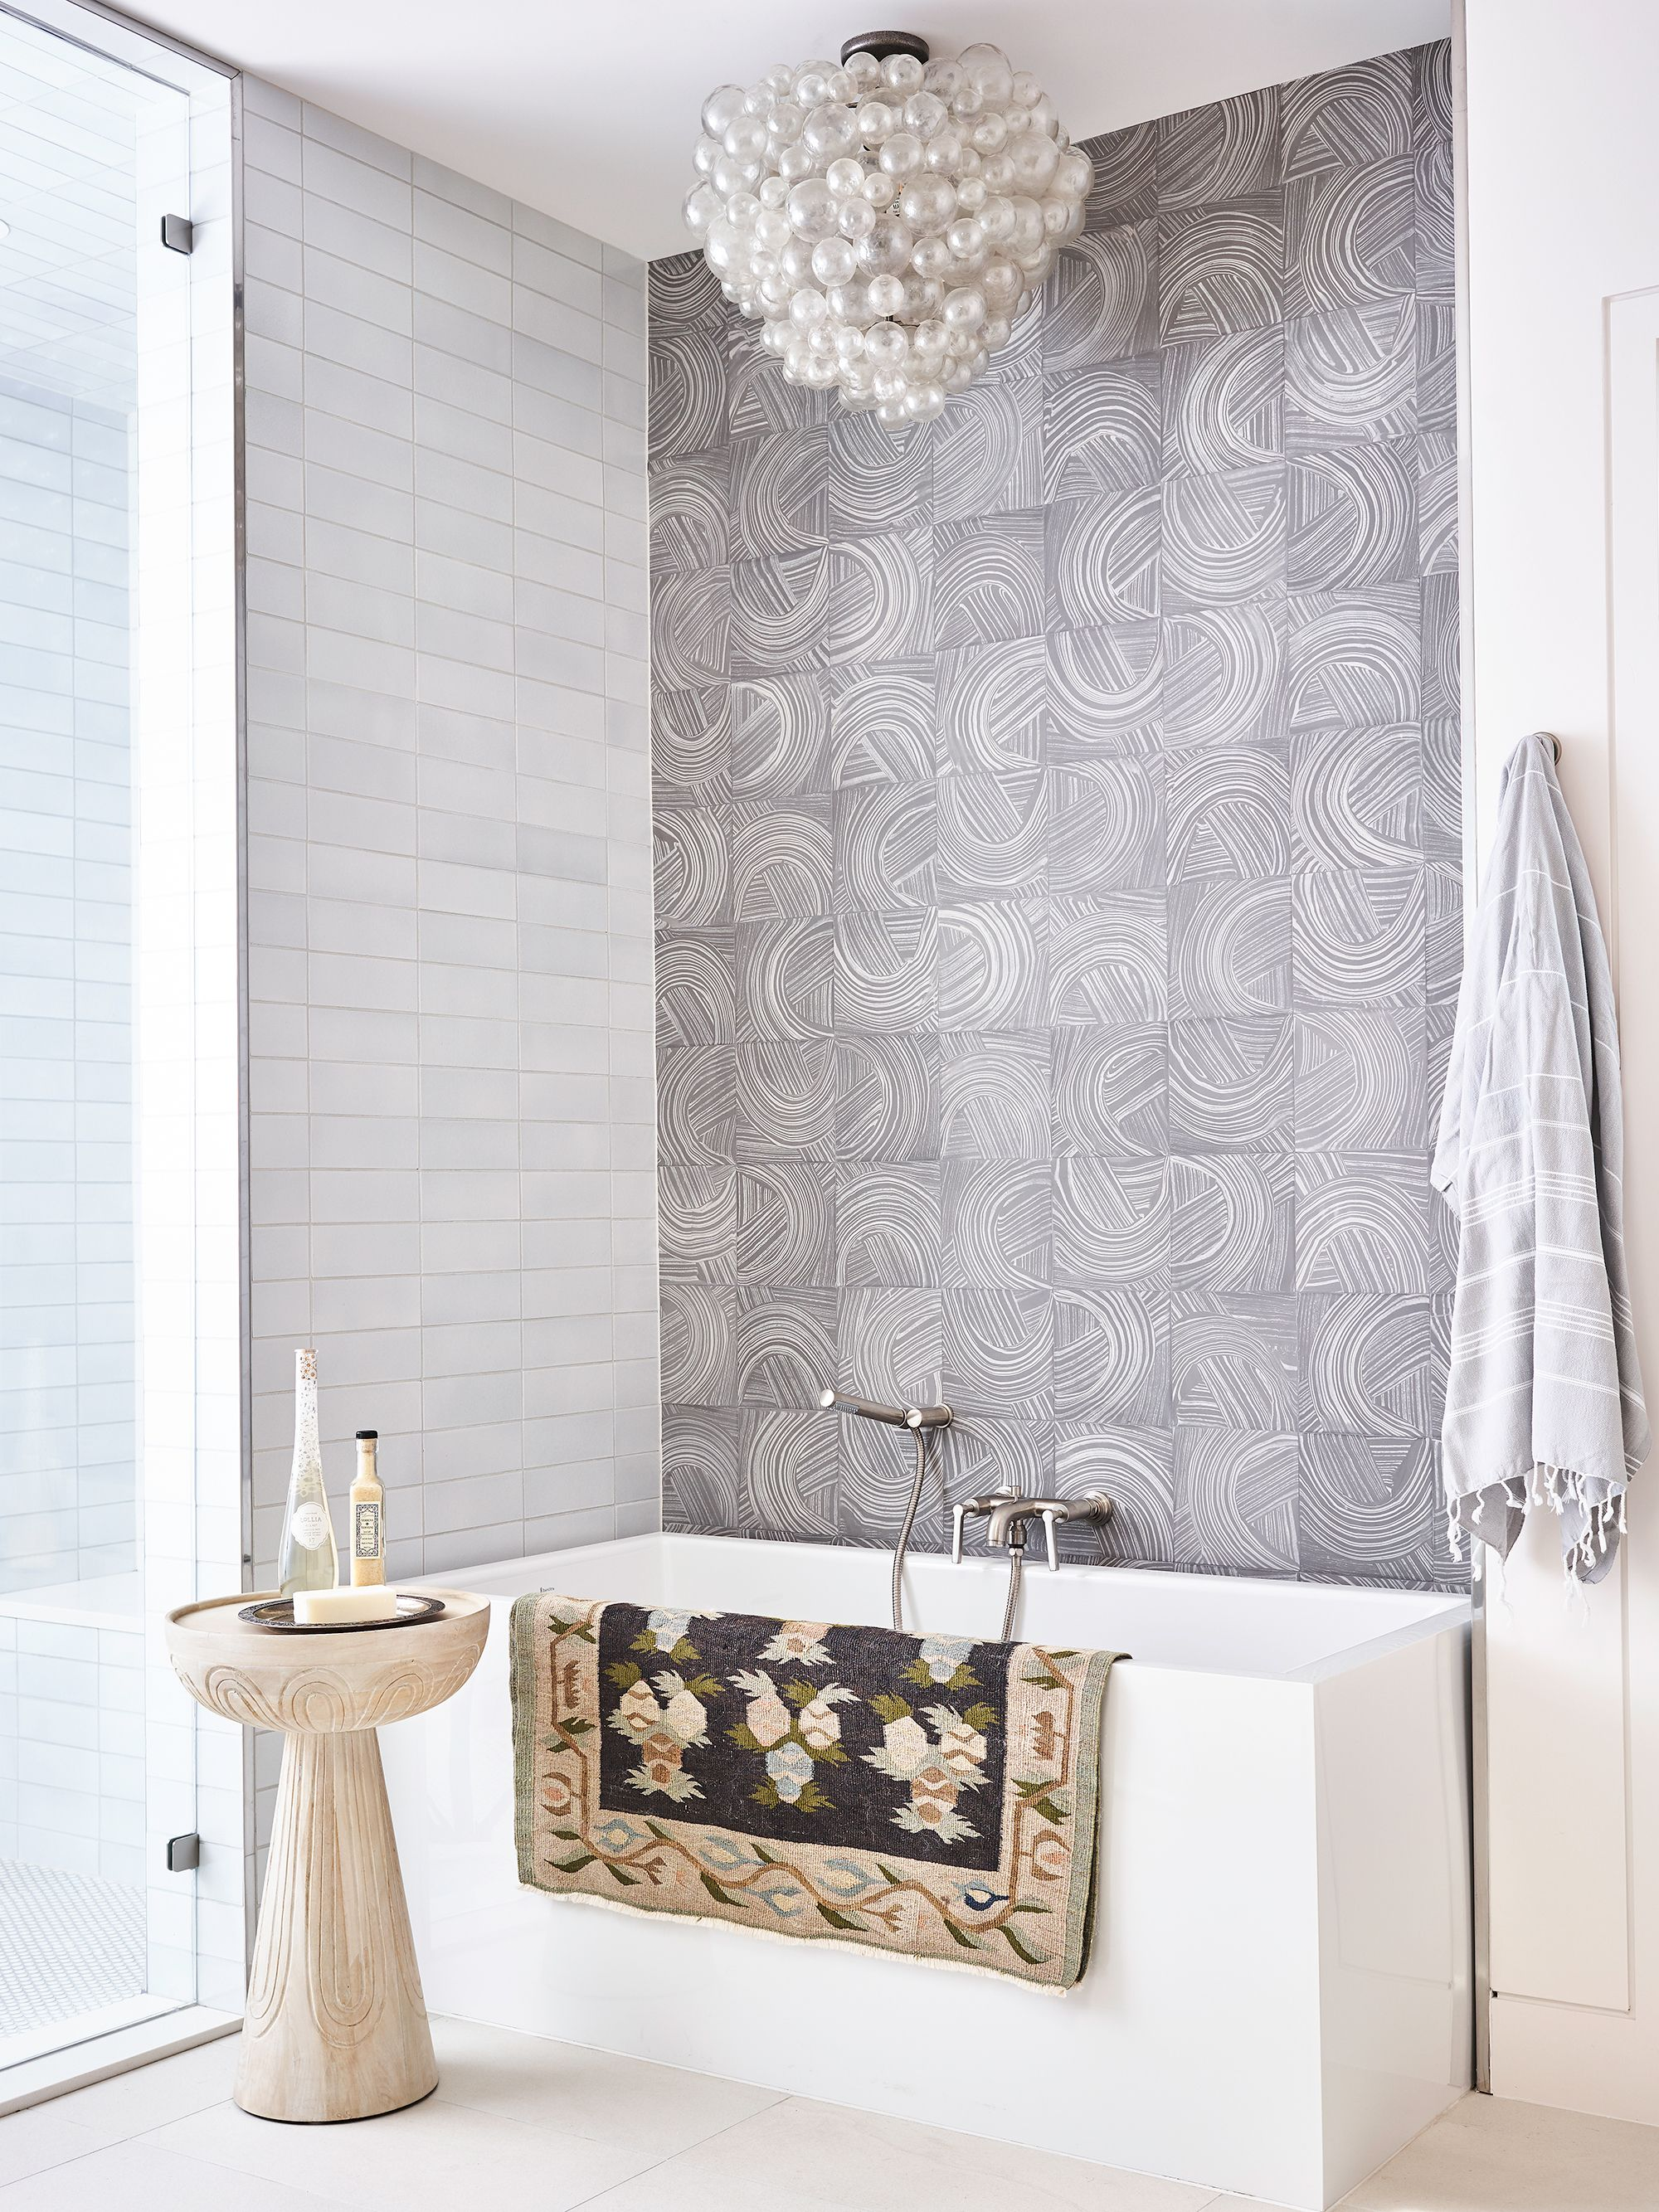 48 Bathroom Tile Ideas Bath Tile Backsplash And Floor Designs